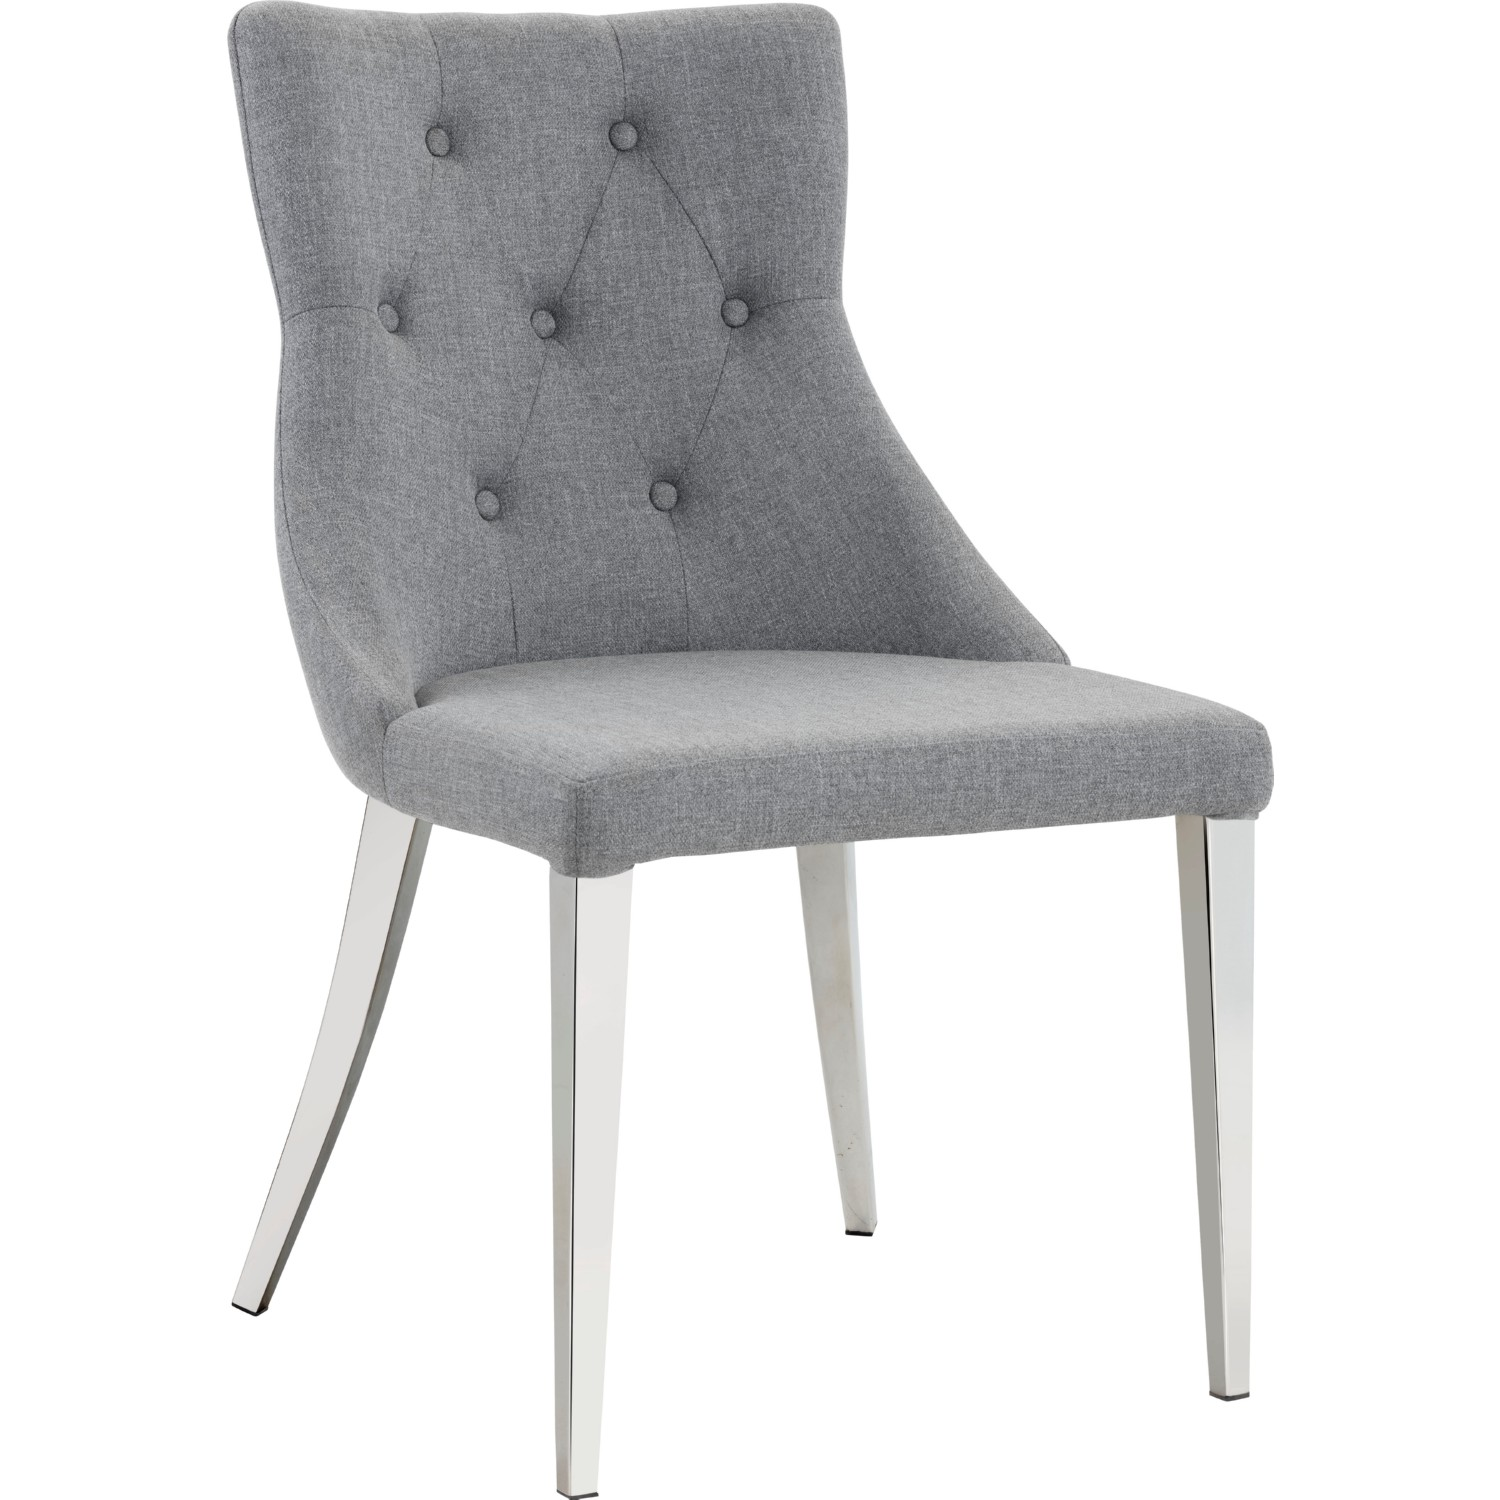 Sunpan Chambers Dining Chair In Tufted Cloud Grey Fabric On Polished  Stainless Legs (Set Of 2)